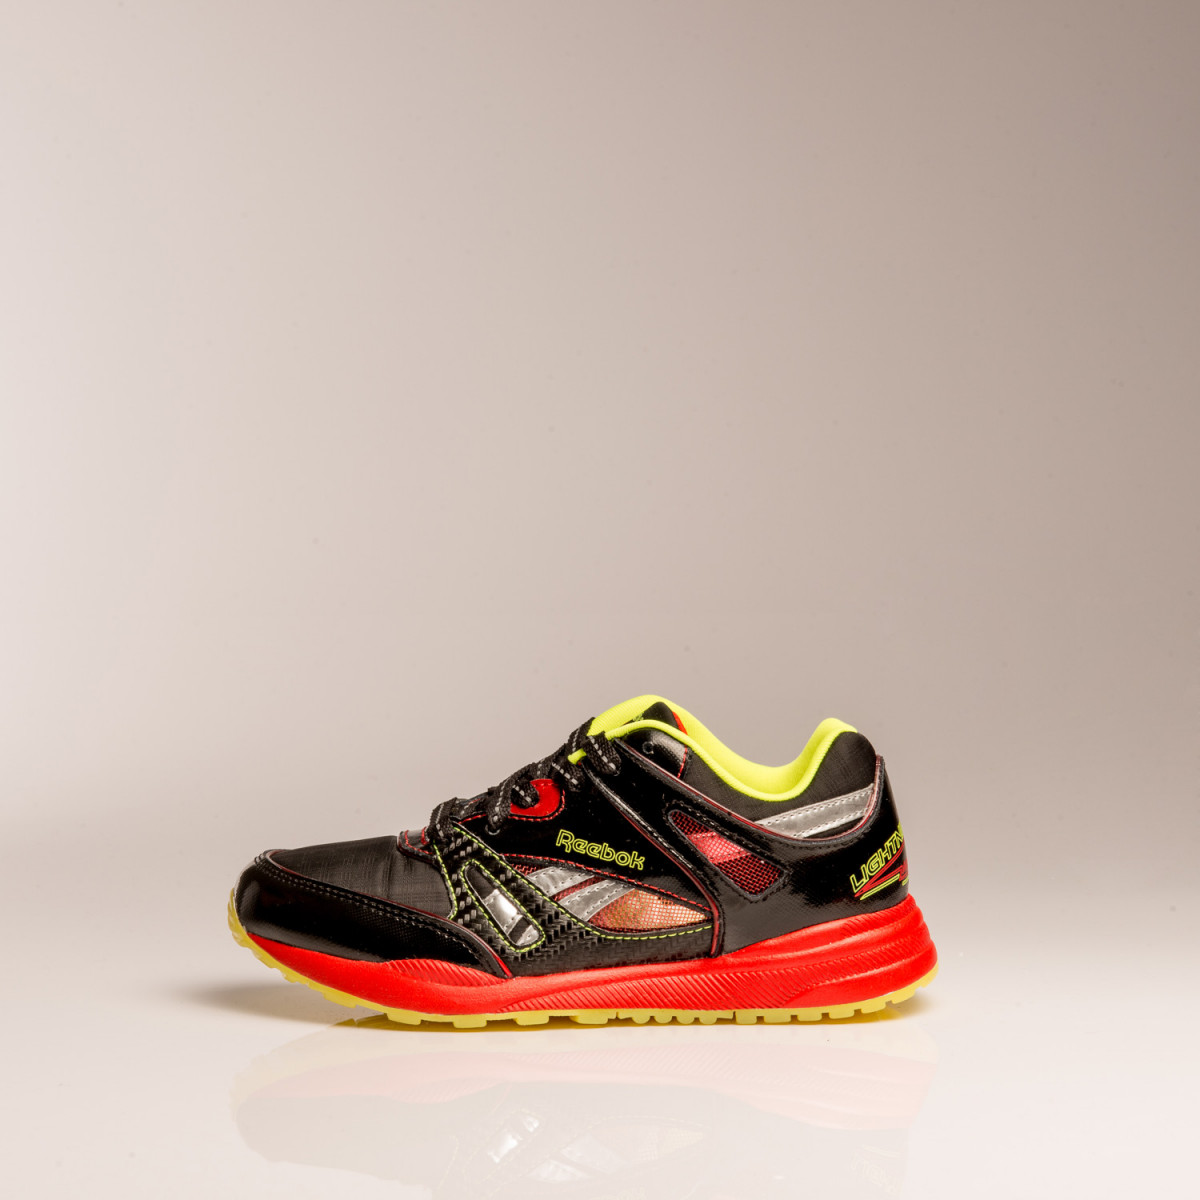 Zapatillas Reebok Cars Neon Ventilator M